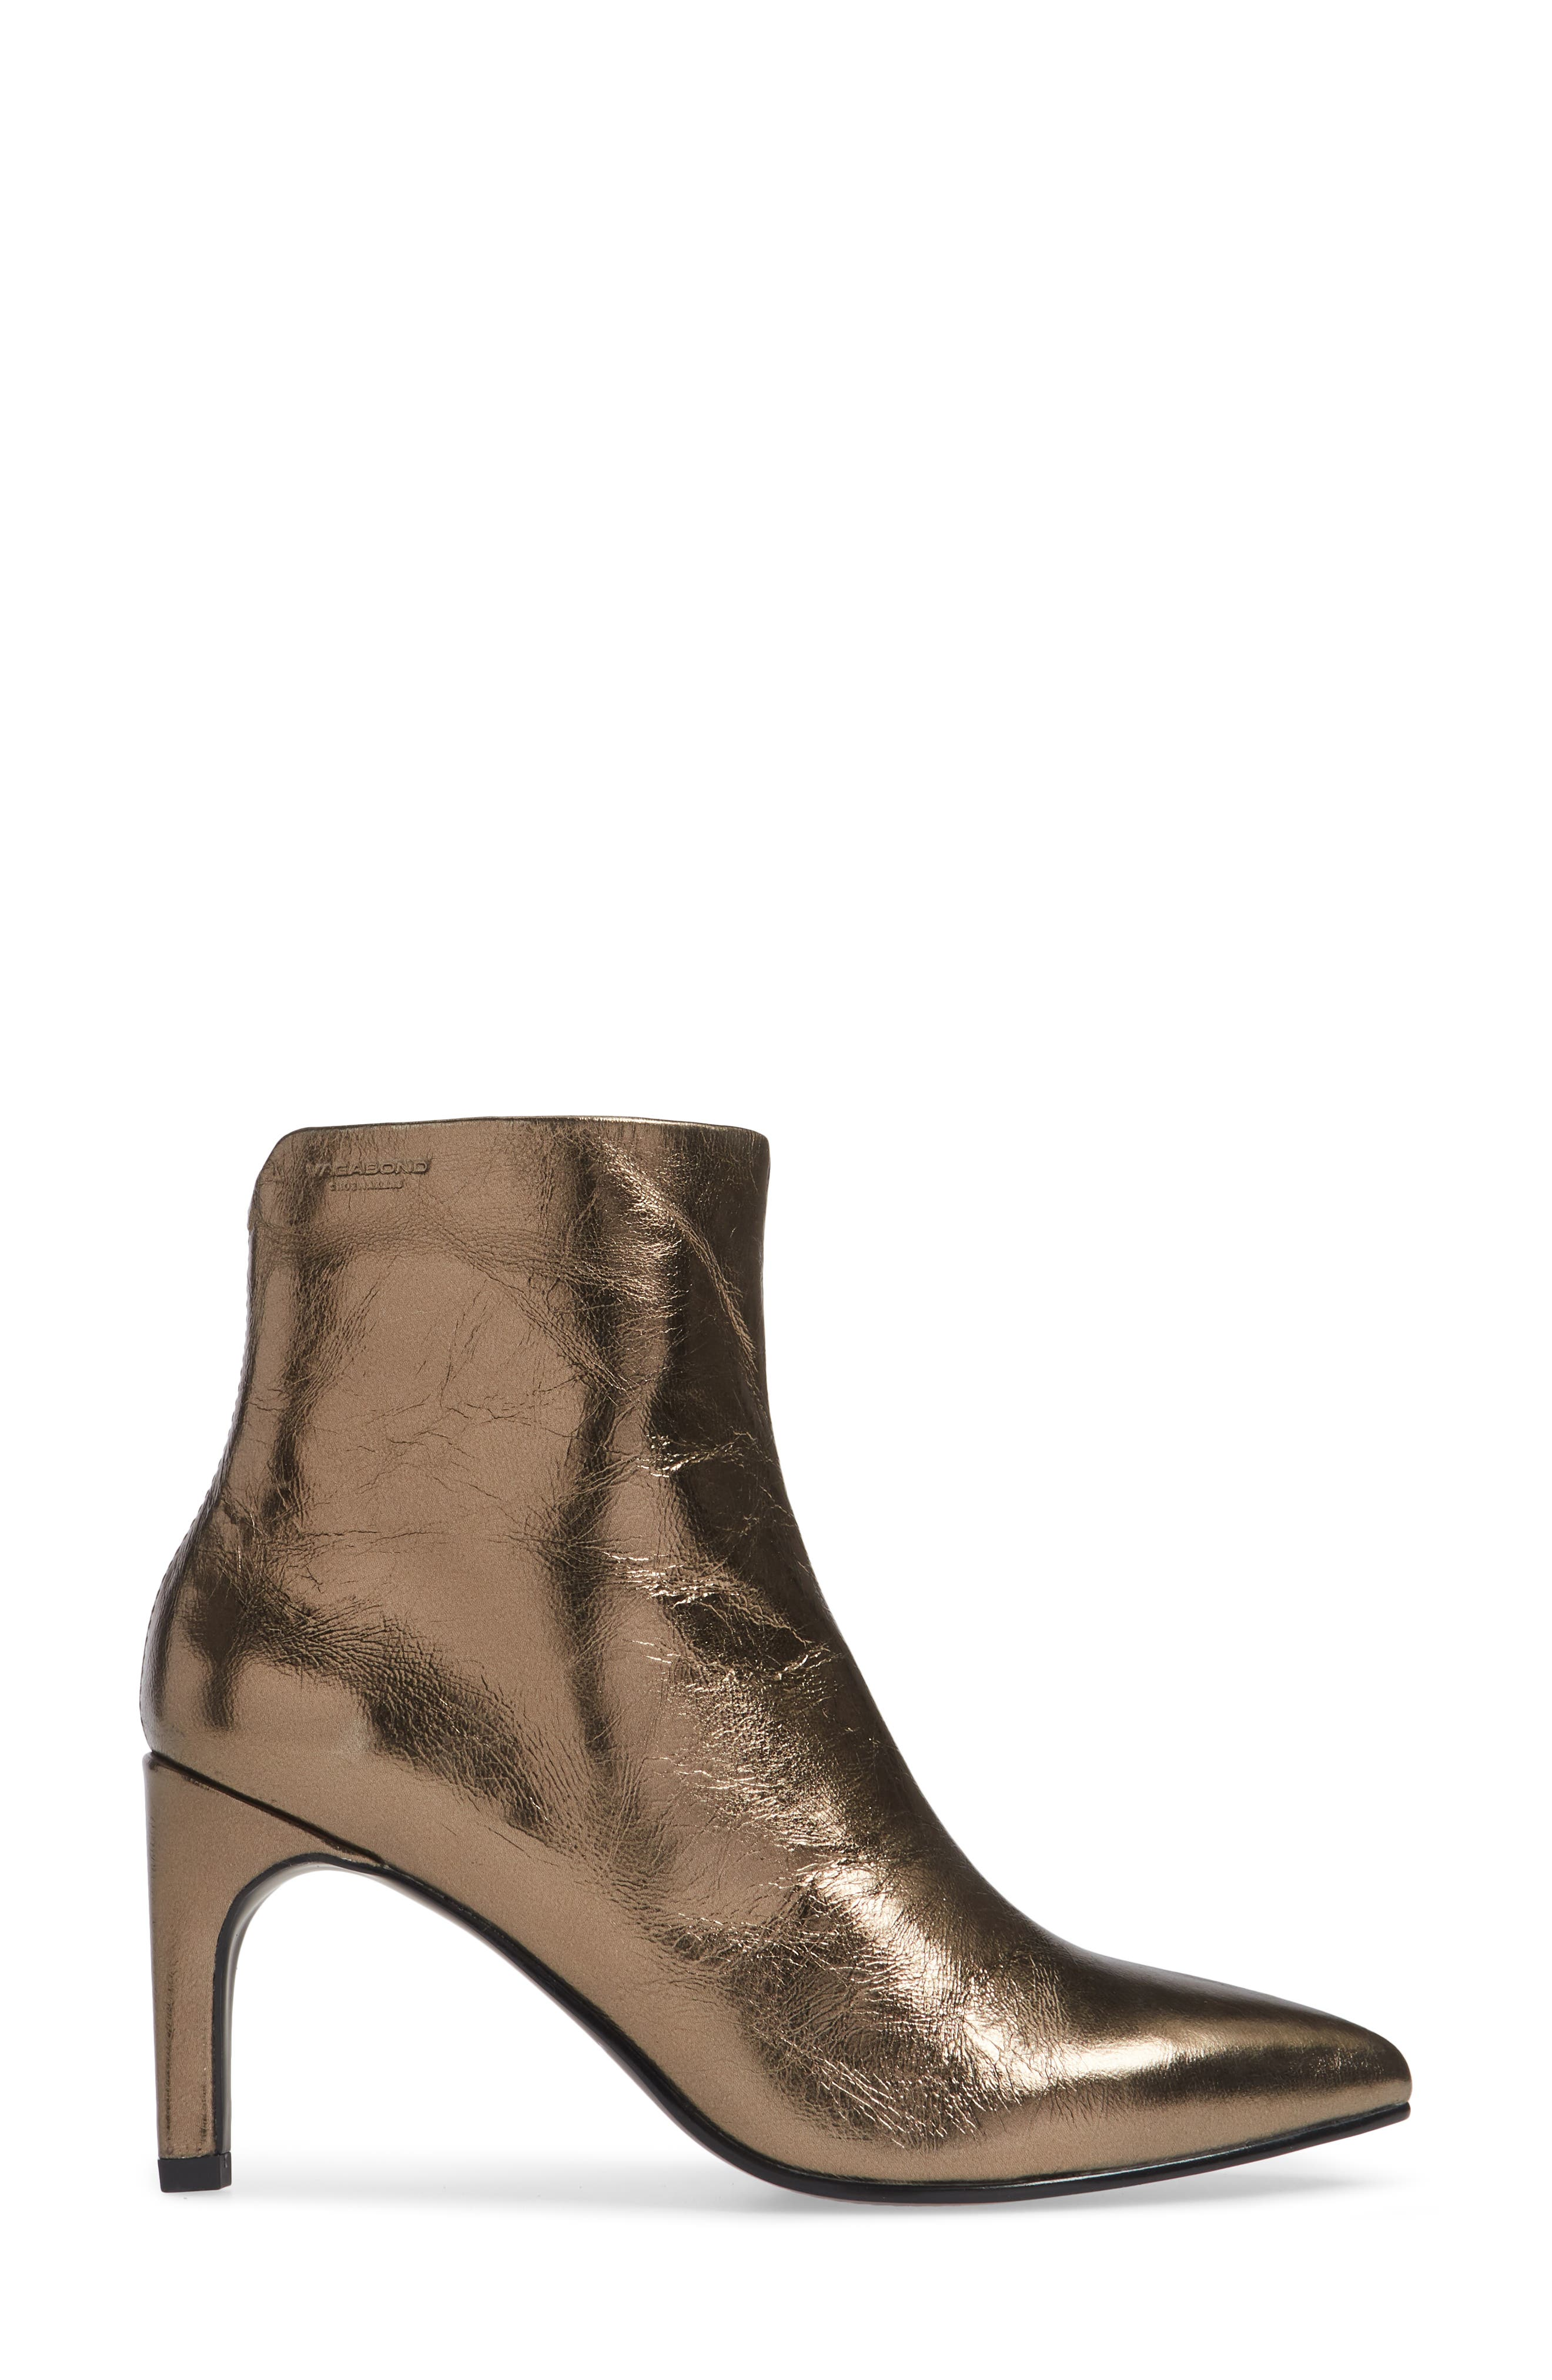 VAGABOND, Shoemakers Whitney Pointy Toe Bootie, Alternate thumbnail 3, color, BRONZE LEATHER